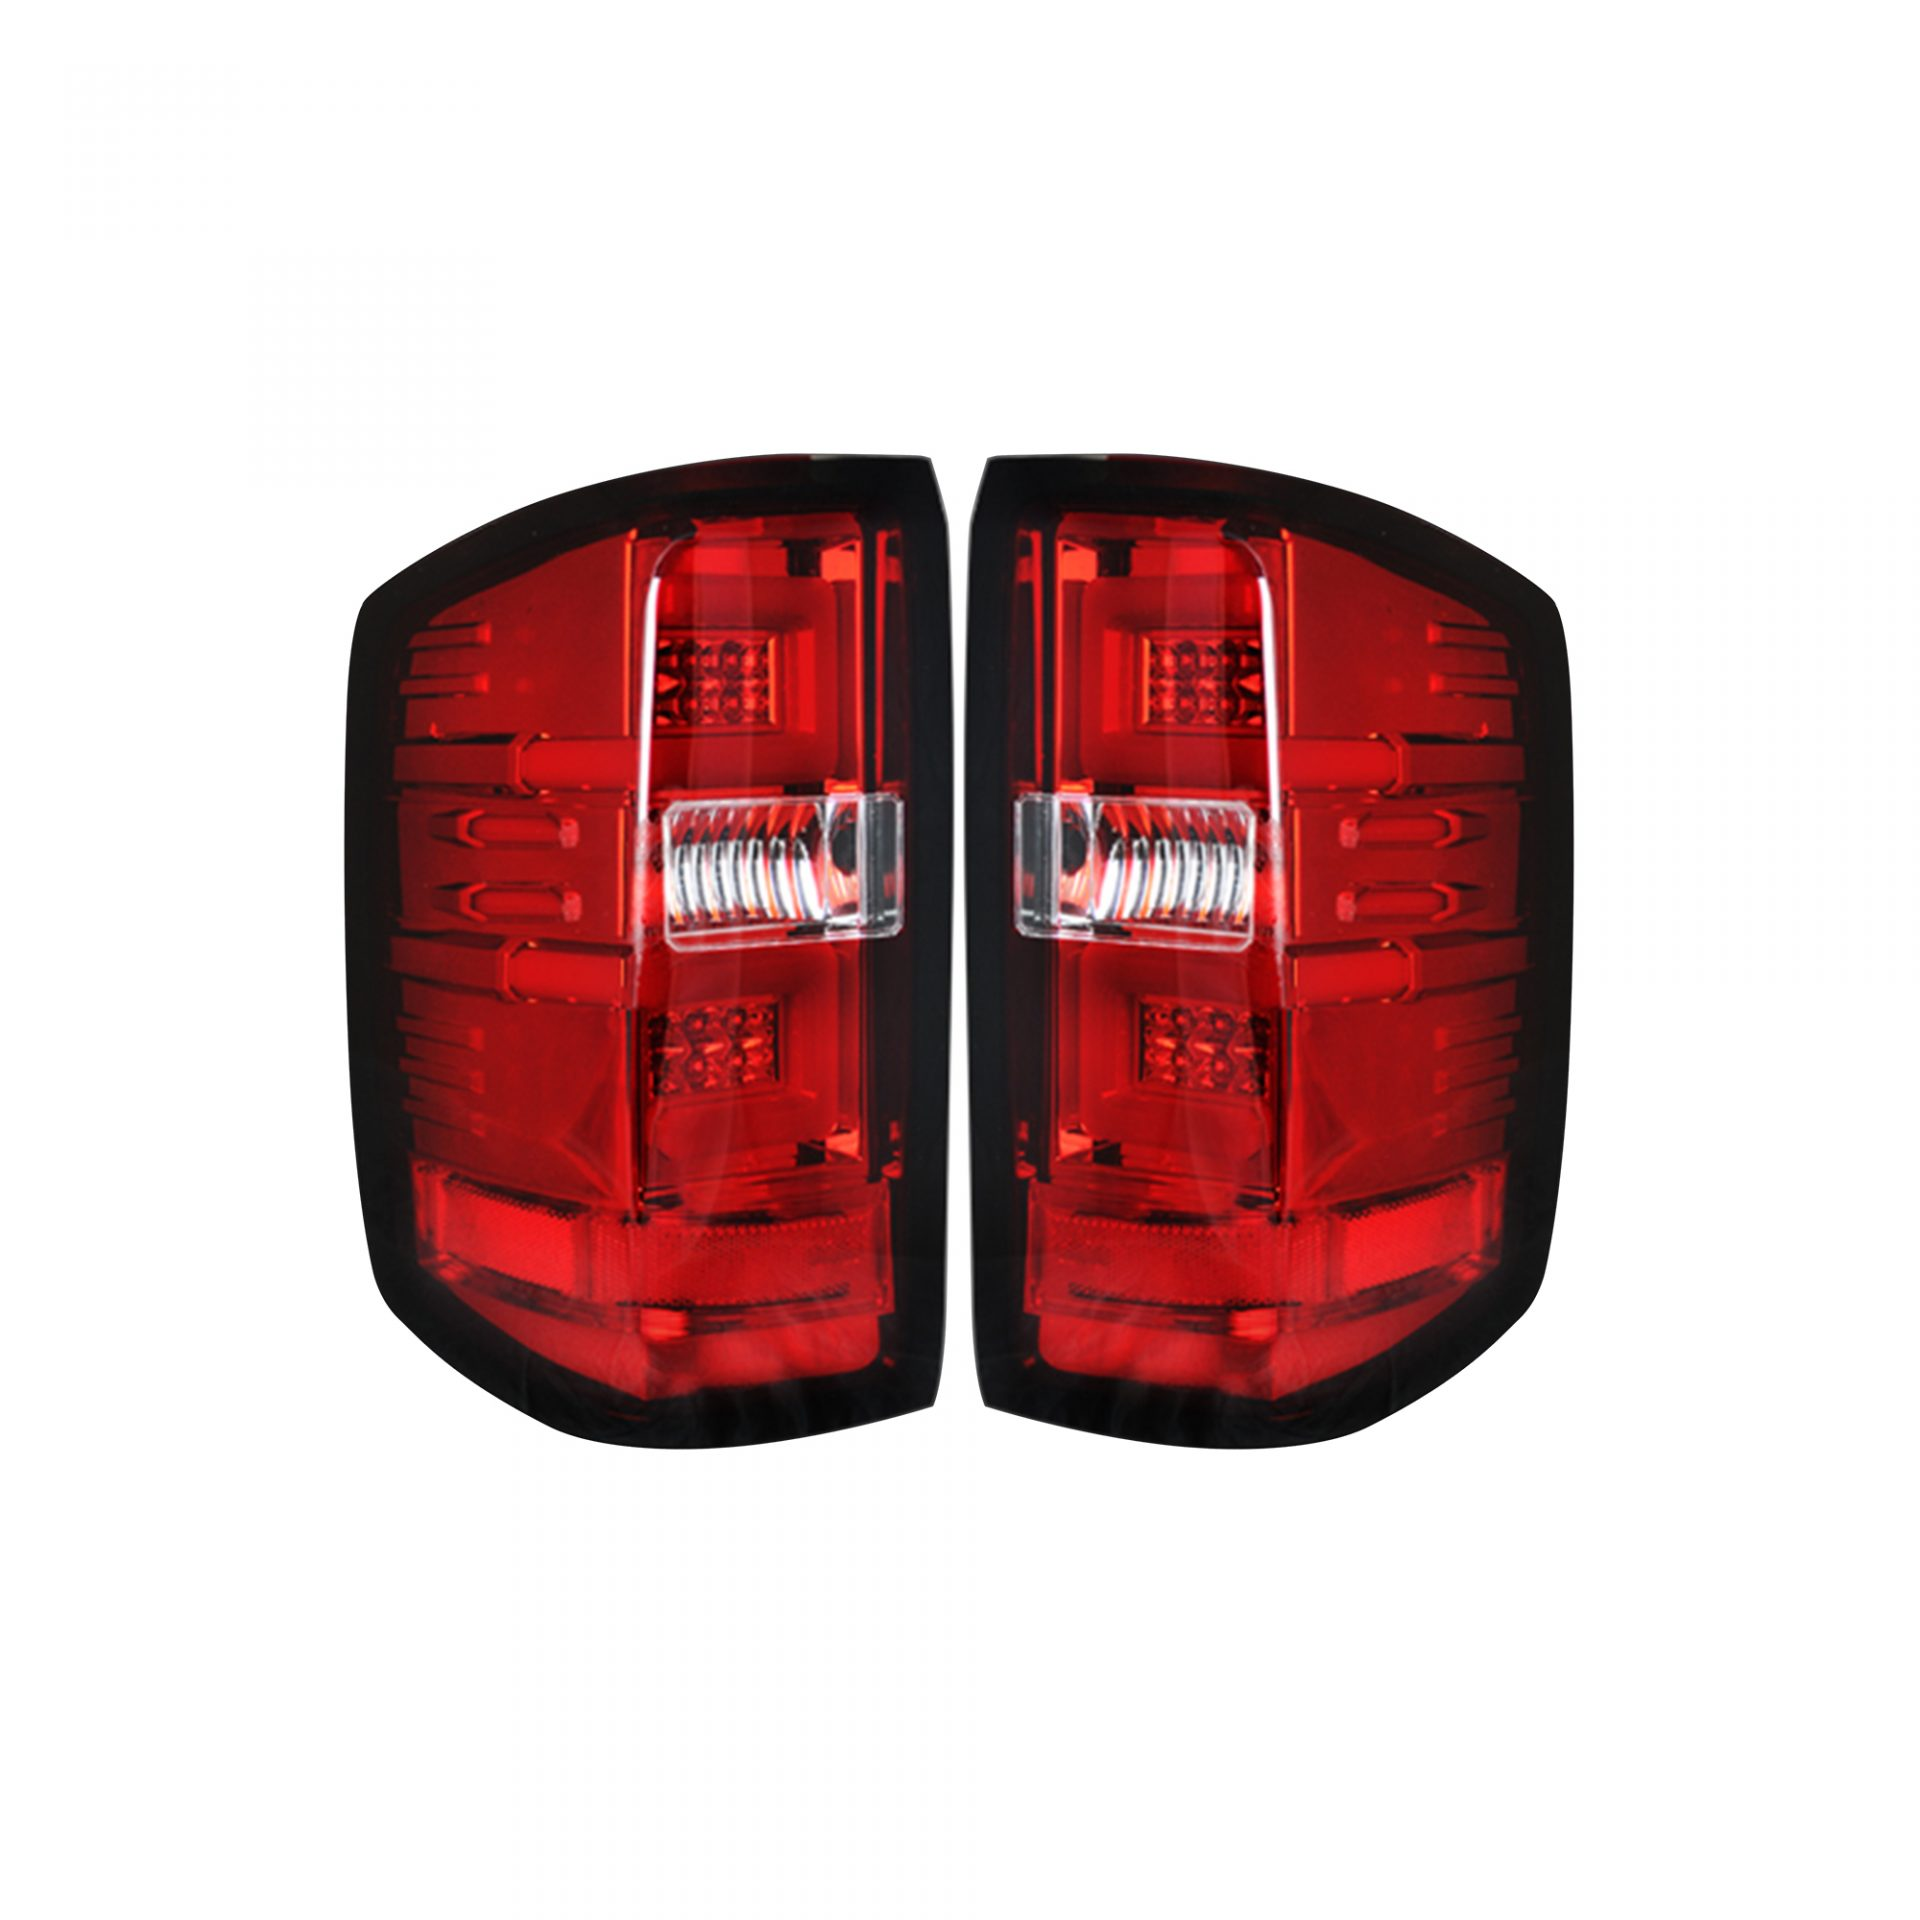 RECON 264238RD Chevy Silverado 14-18 1500 & 14-19 2500/3500 (Replaces  Factory OEM Halogen Tail Lights ONLY - Also Fits GMC Sierra 15-19 Dually  Body